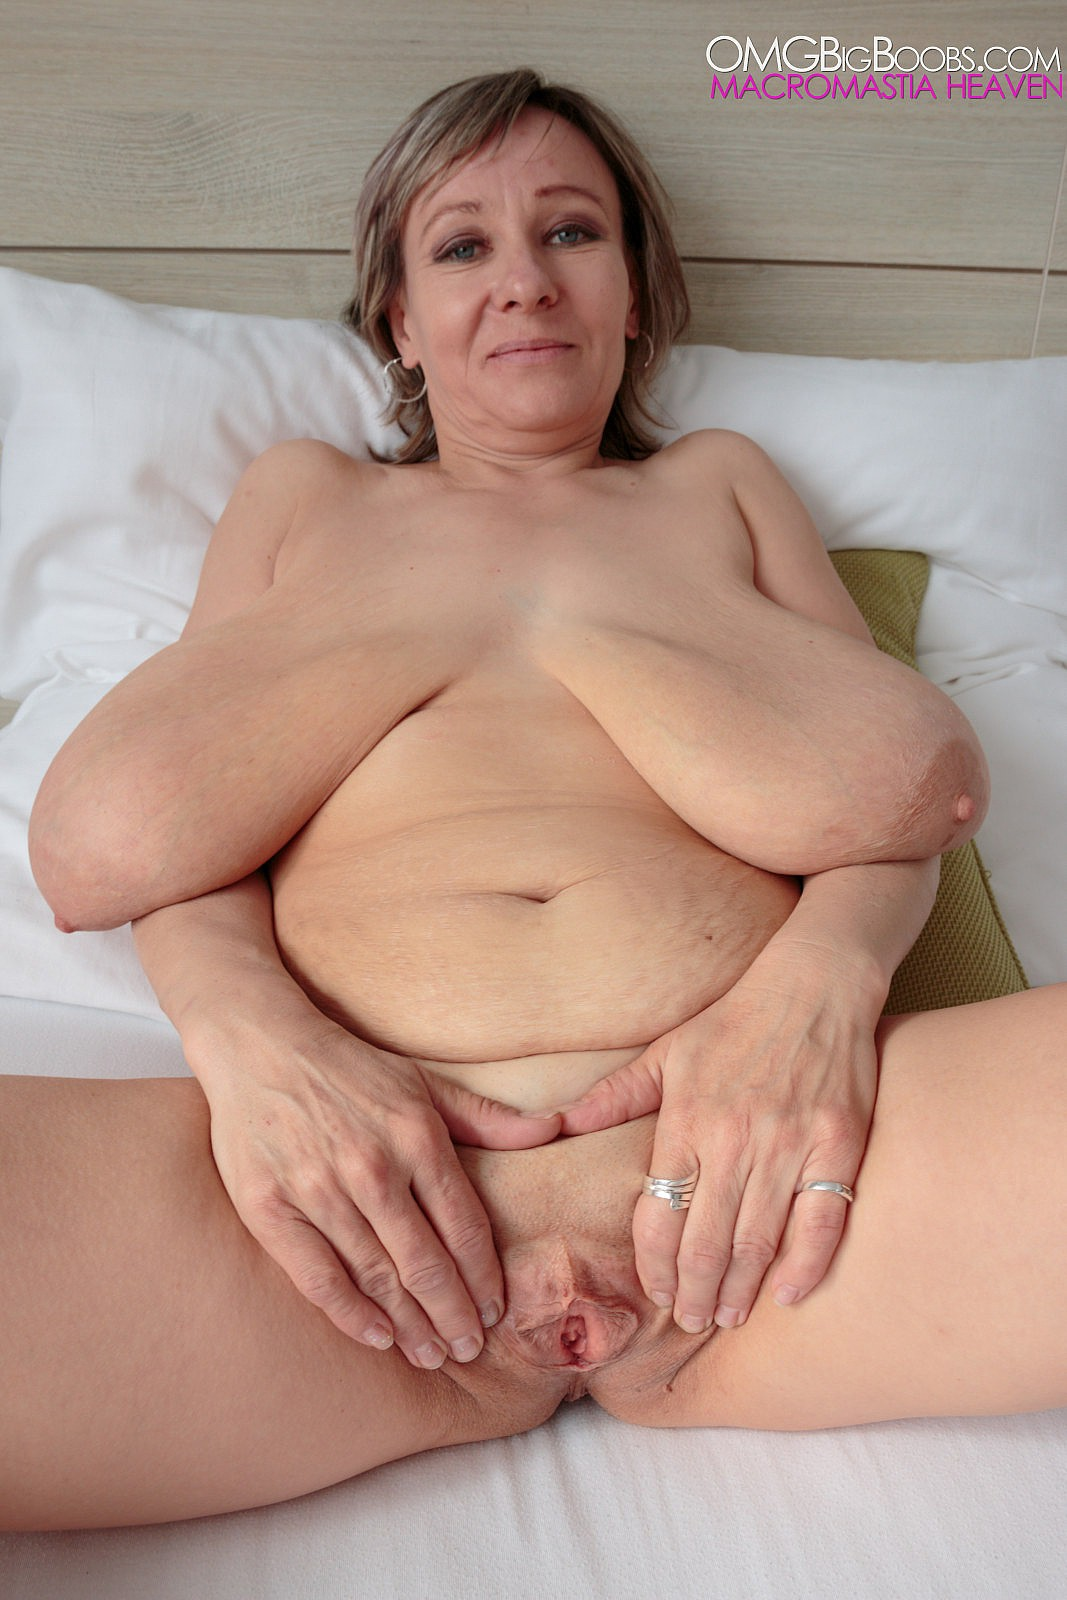 Archive Of Old Women Mature Saggy Tits-2988